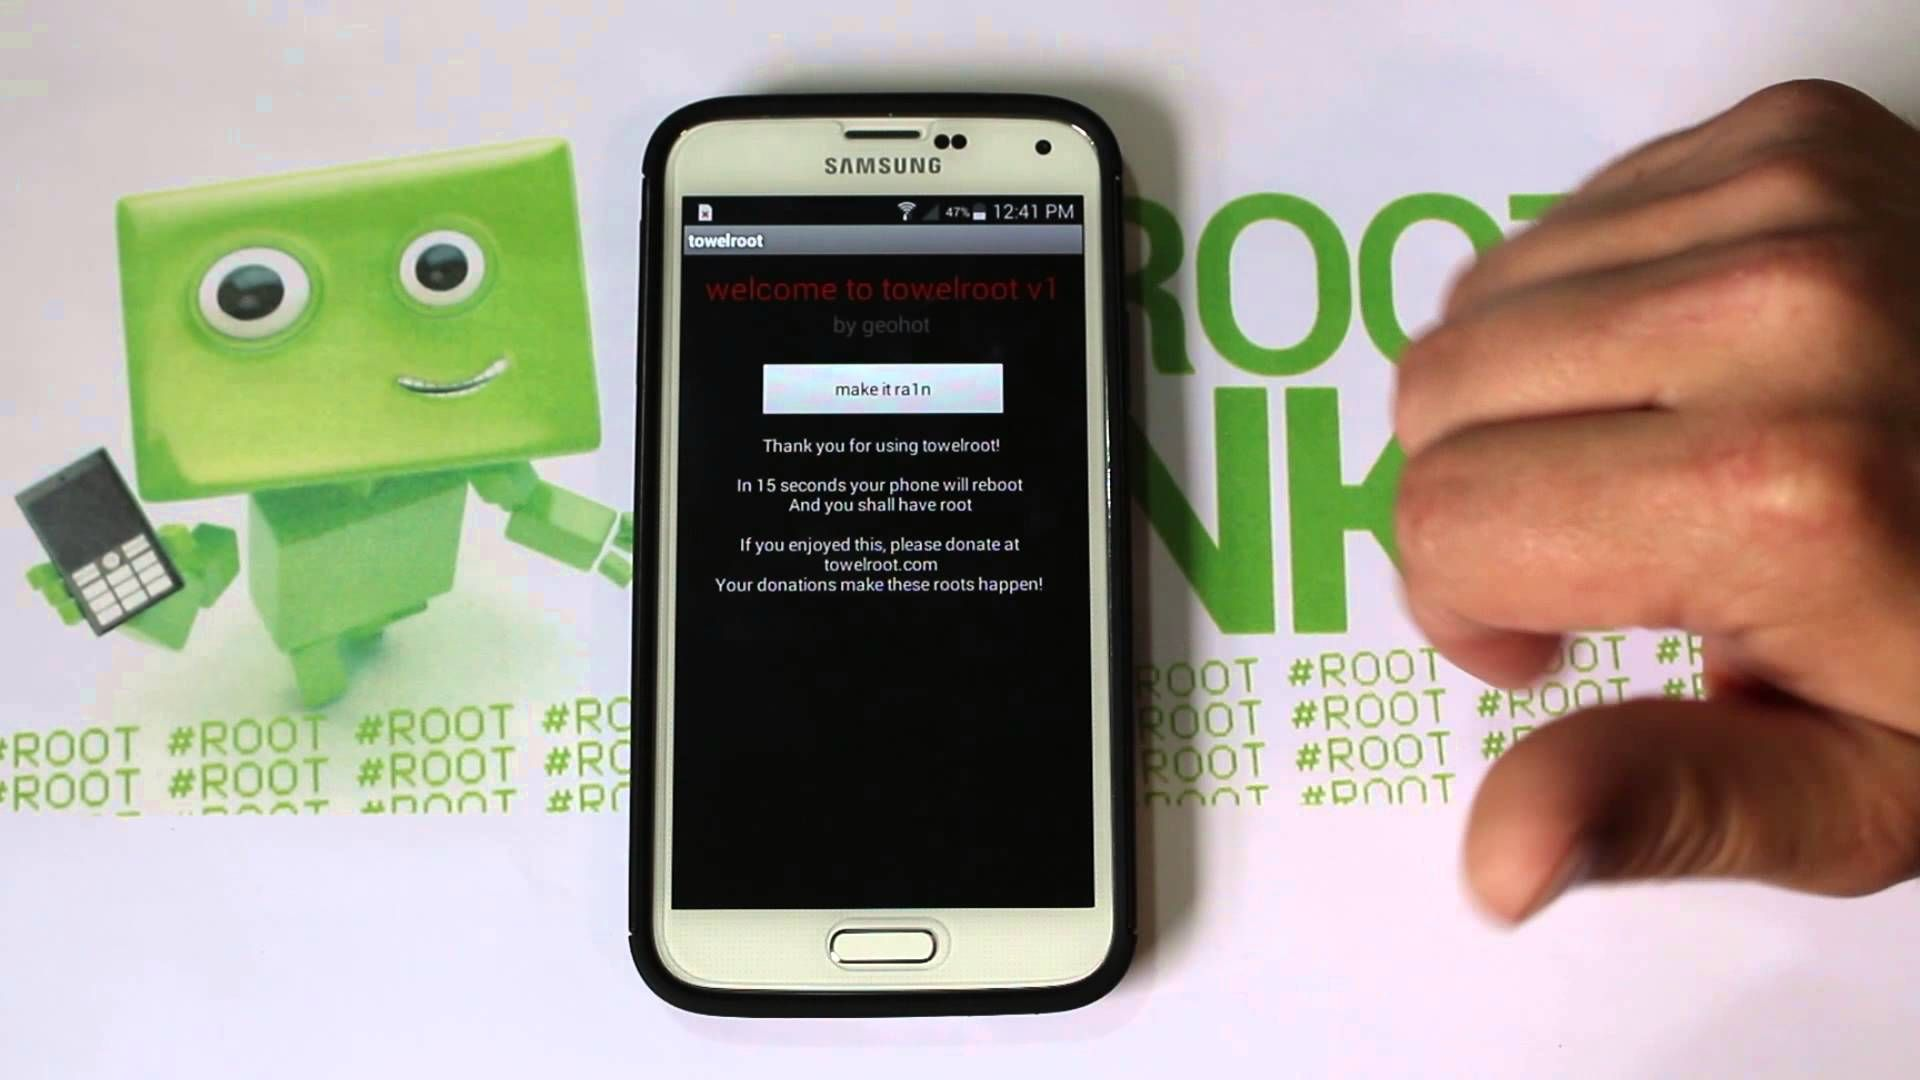 How to Root Samsung Galaxy S5, S4, Note 3, & S4 active for